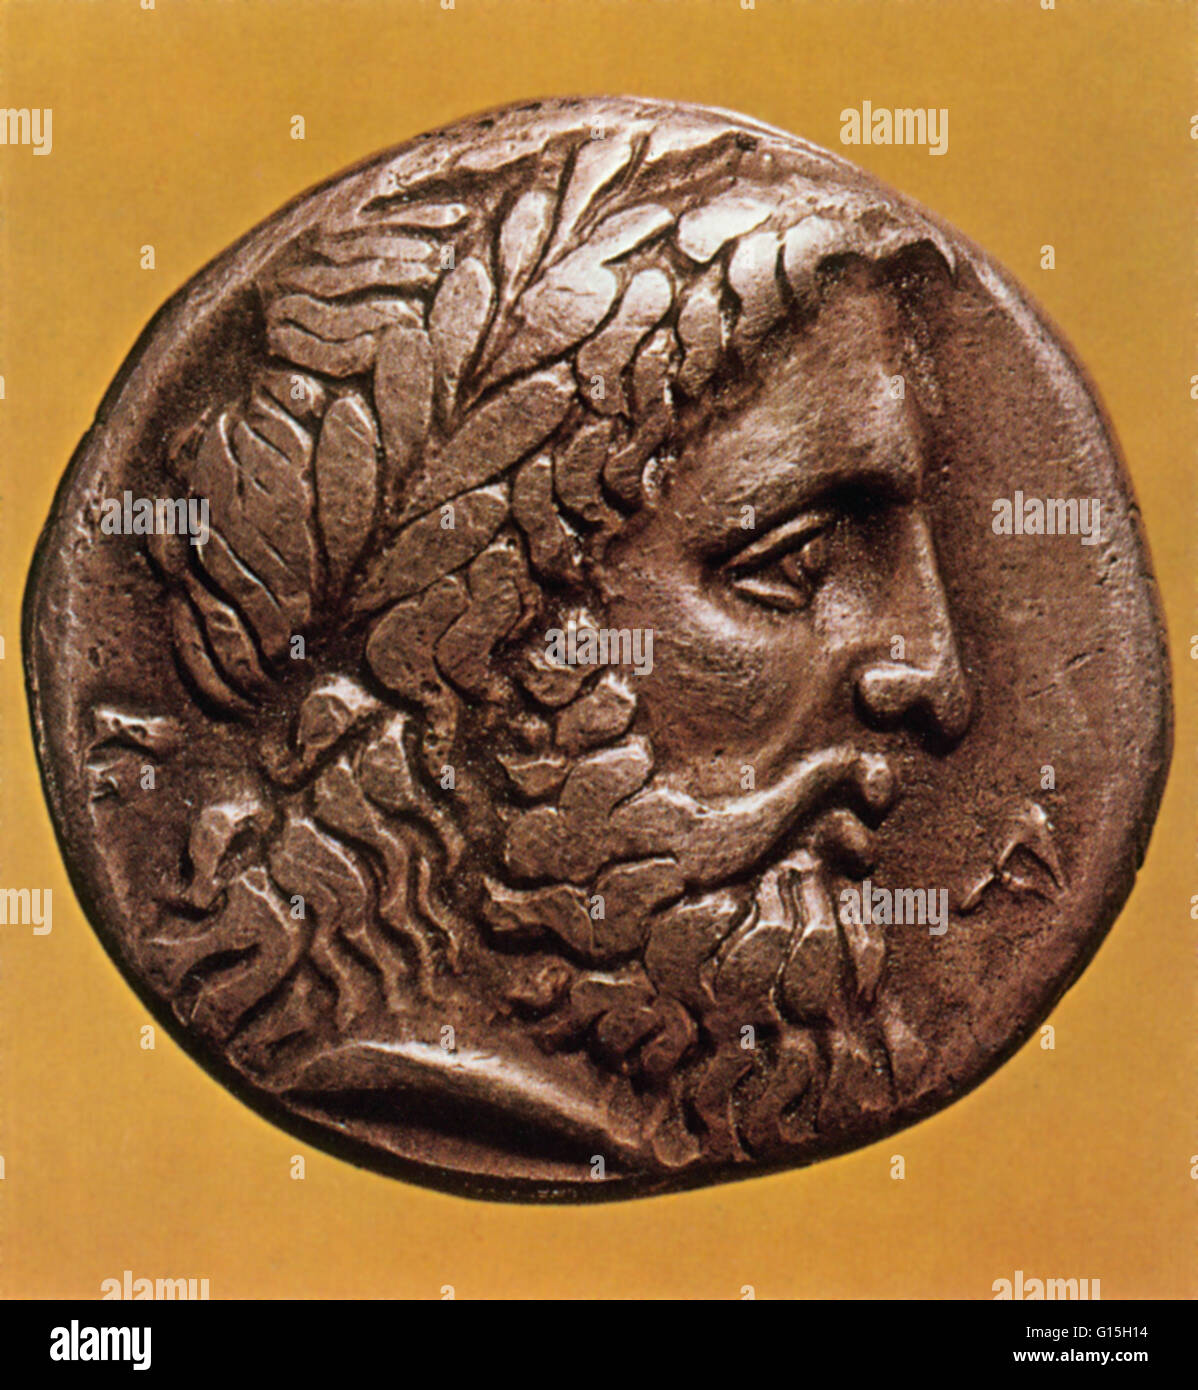 Greek god Zeus depicted on an ancient Greek coin from Elis. Zeus is the 'father of Gods and men' who rules - Stock Image